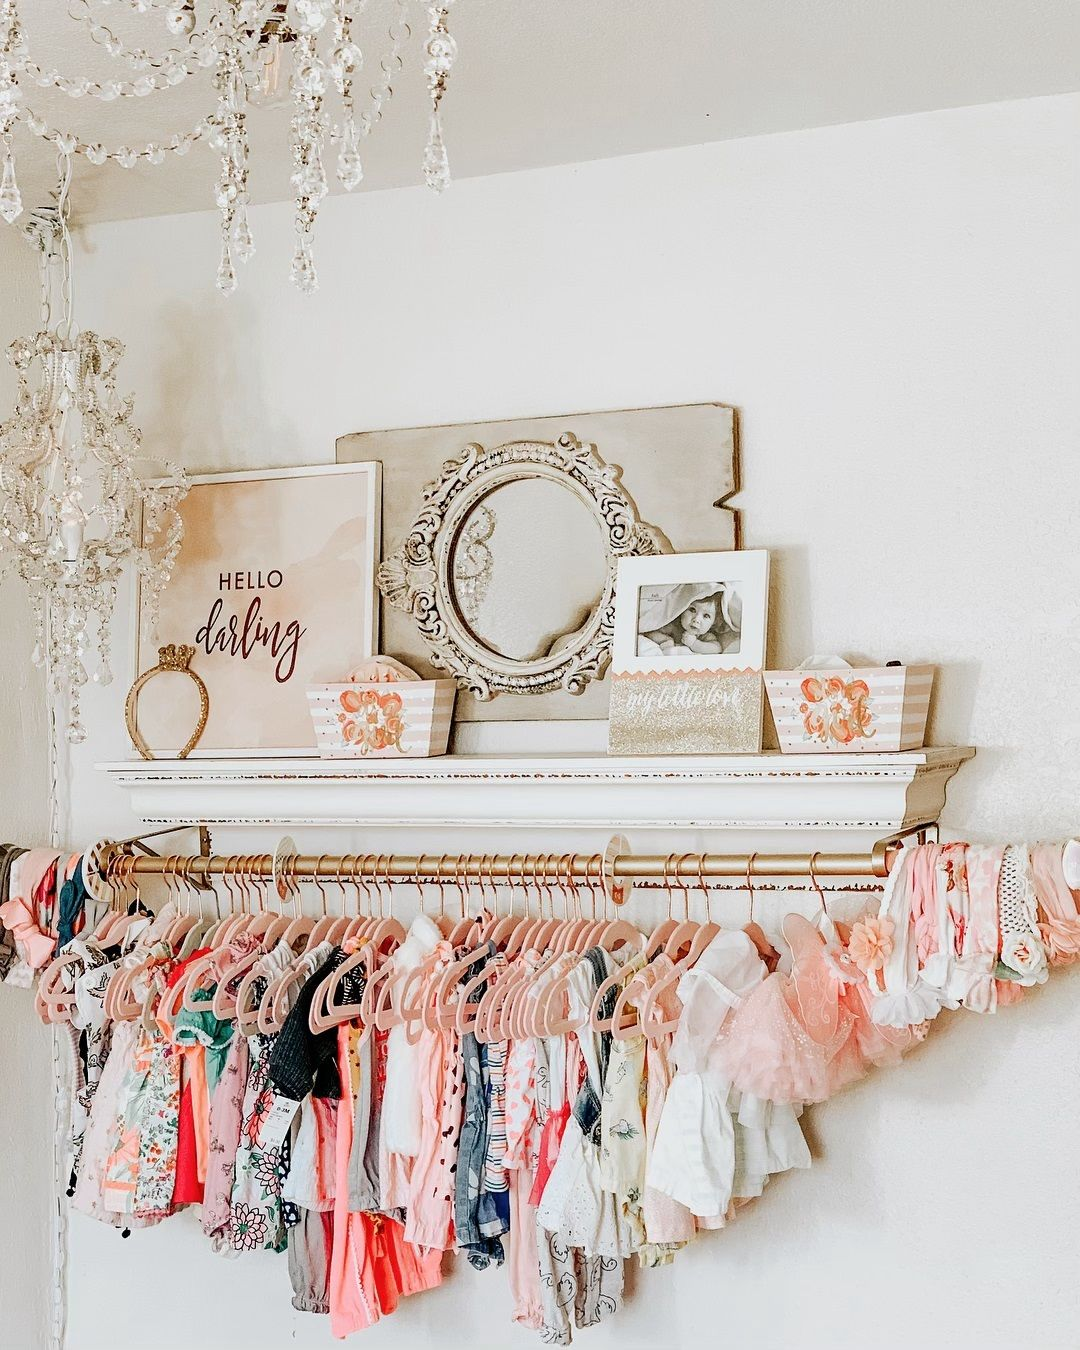 Diy Baby Closet Such A Clever Way To Store And Organize Baby